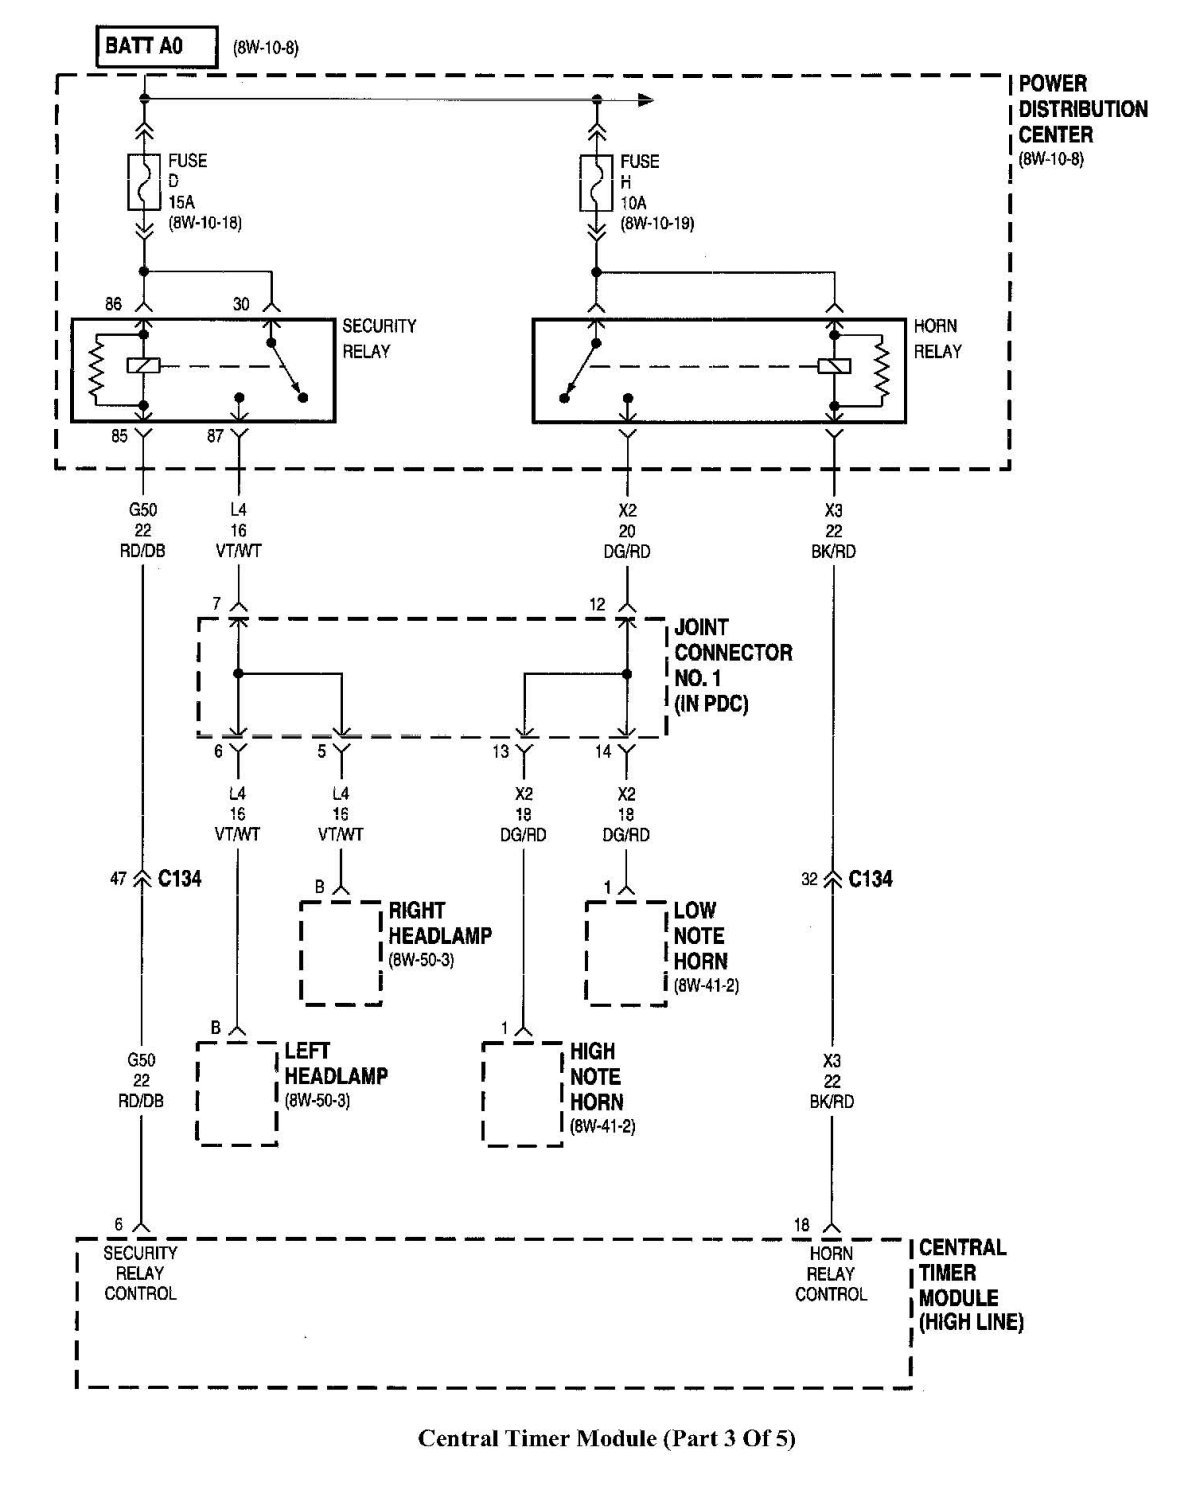 Wiring Diagram For 1998 Dodge Ram 3500 - Wiring Diagrams Hubs - Trailer Wiring Diagram 2003 Dodge Ram